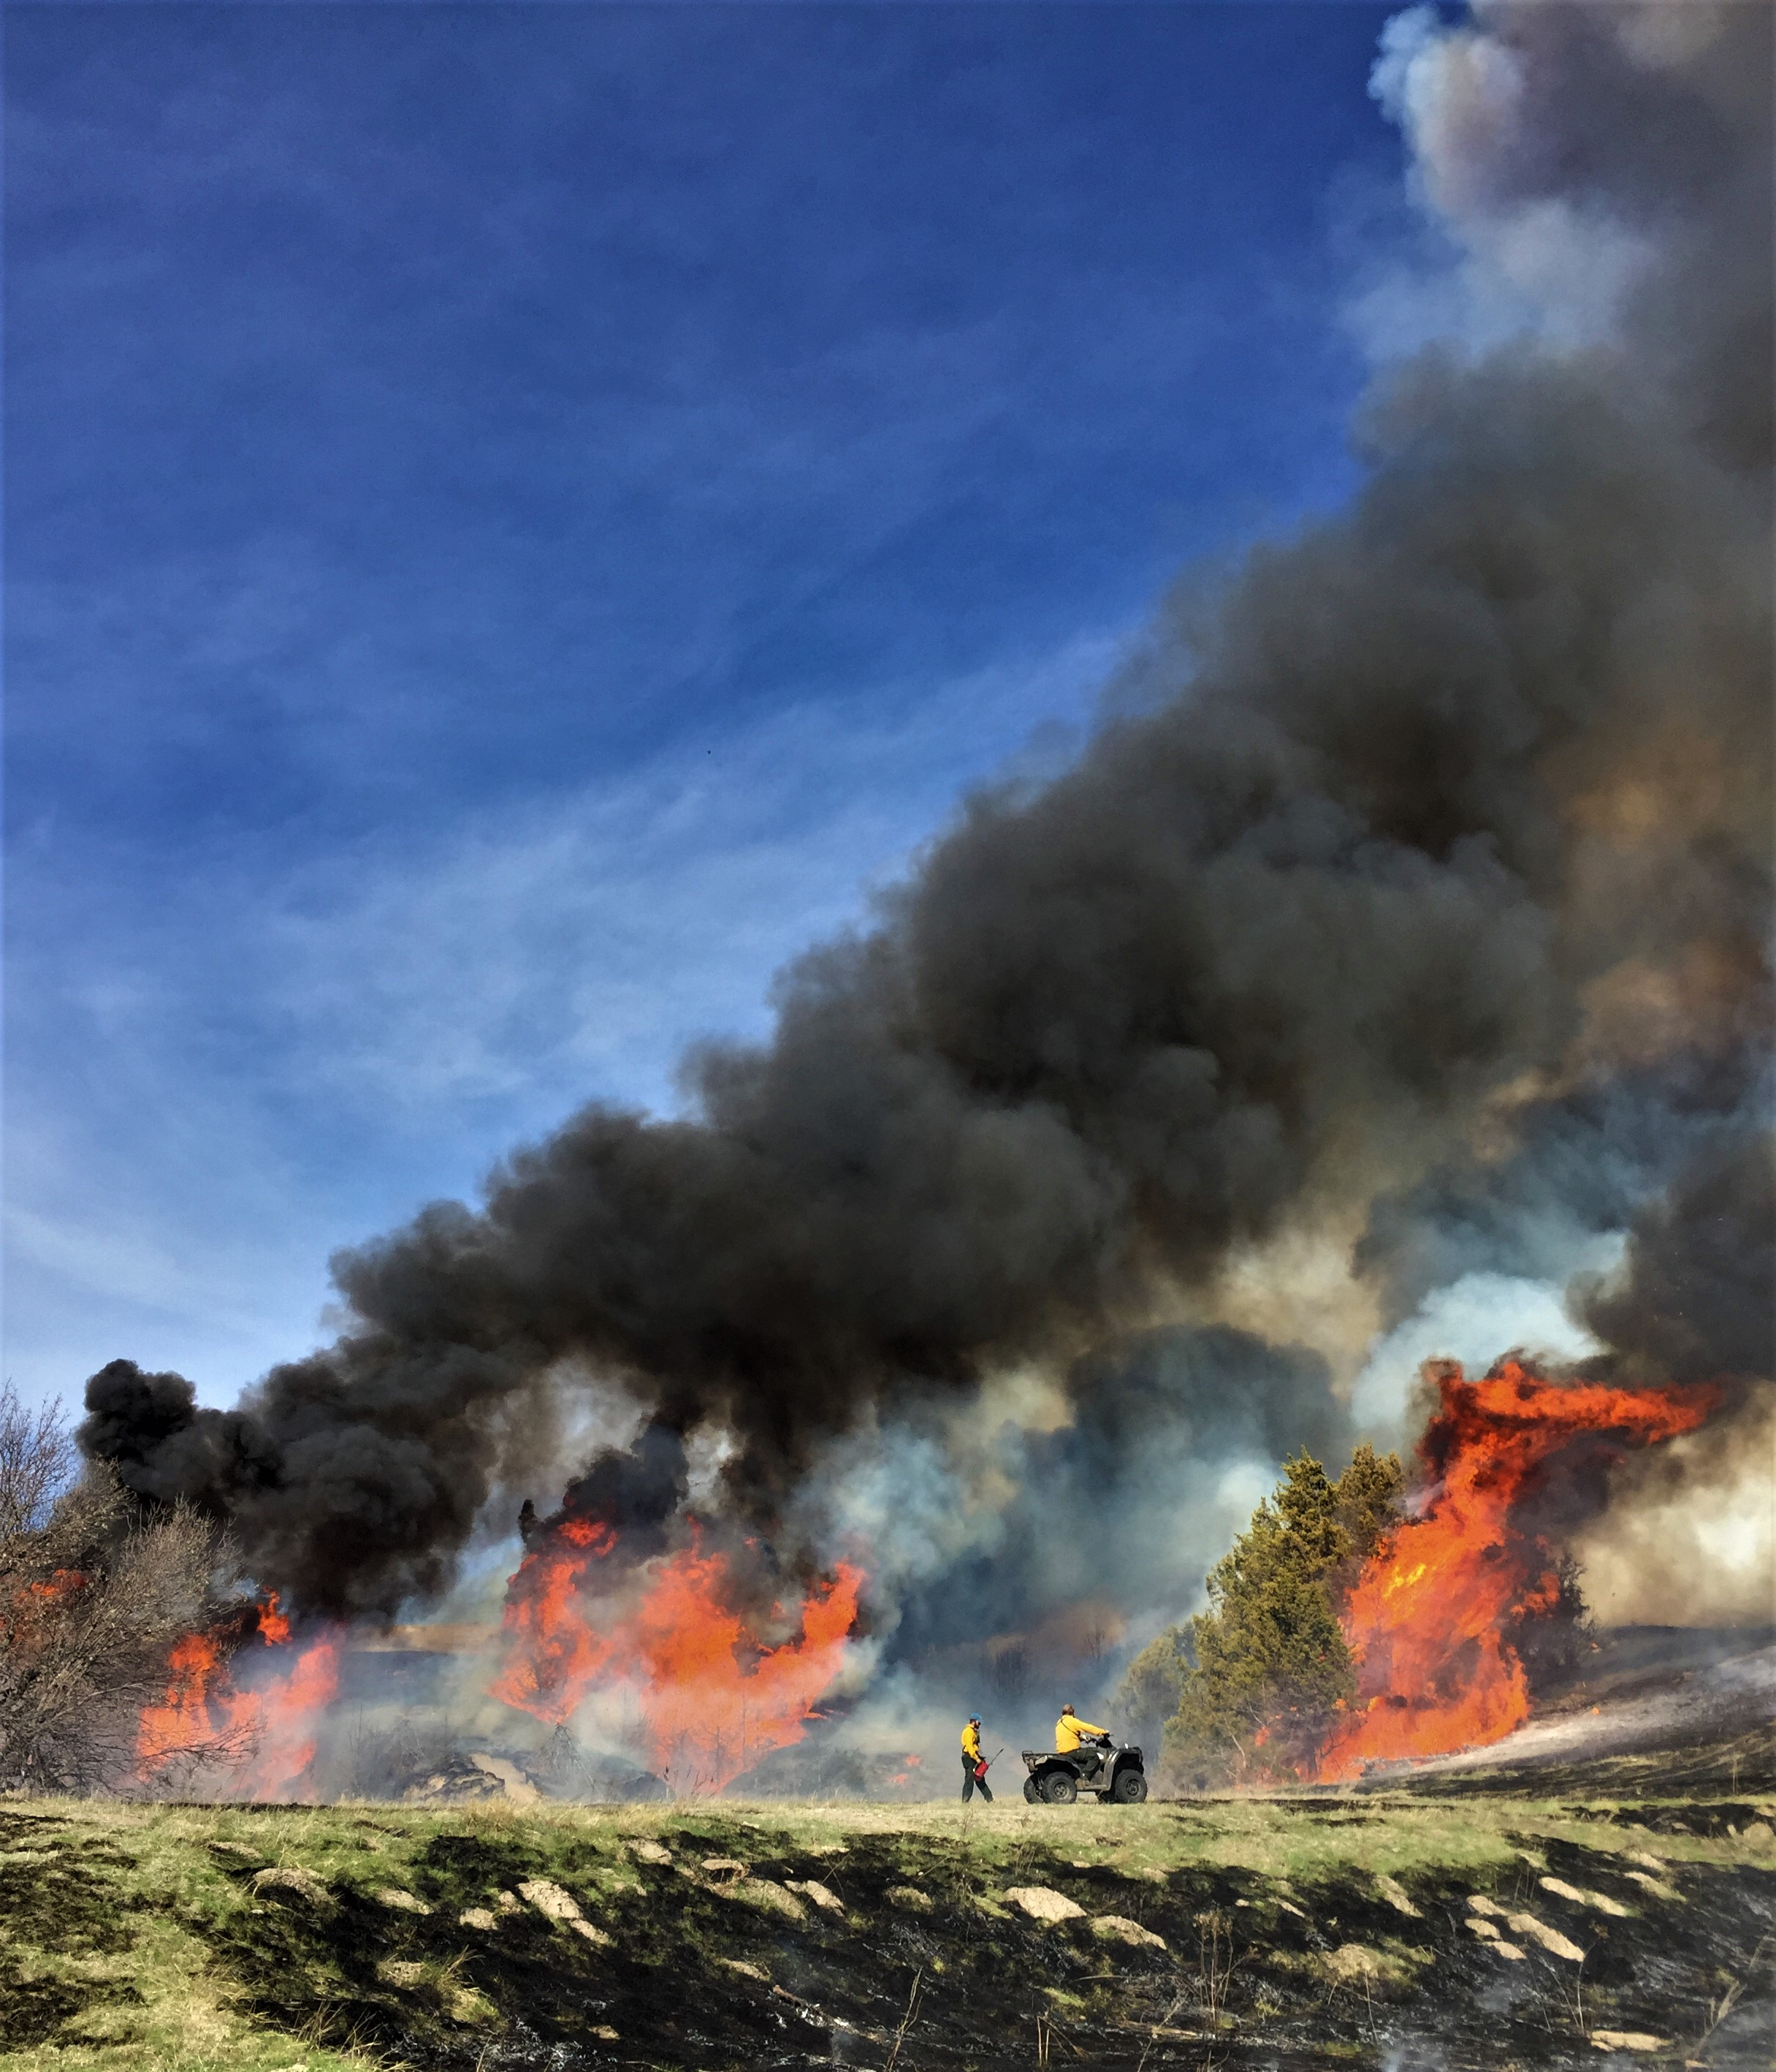 Prescribed fire in the Loess Canyons of Nebraska, USA.